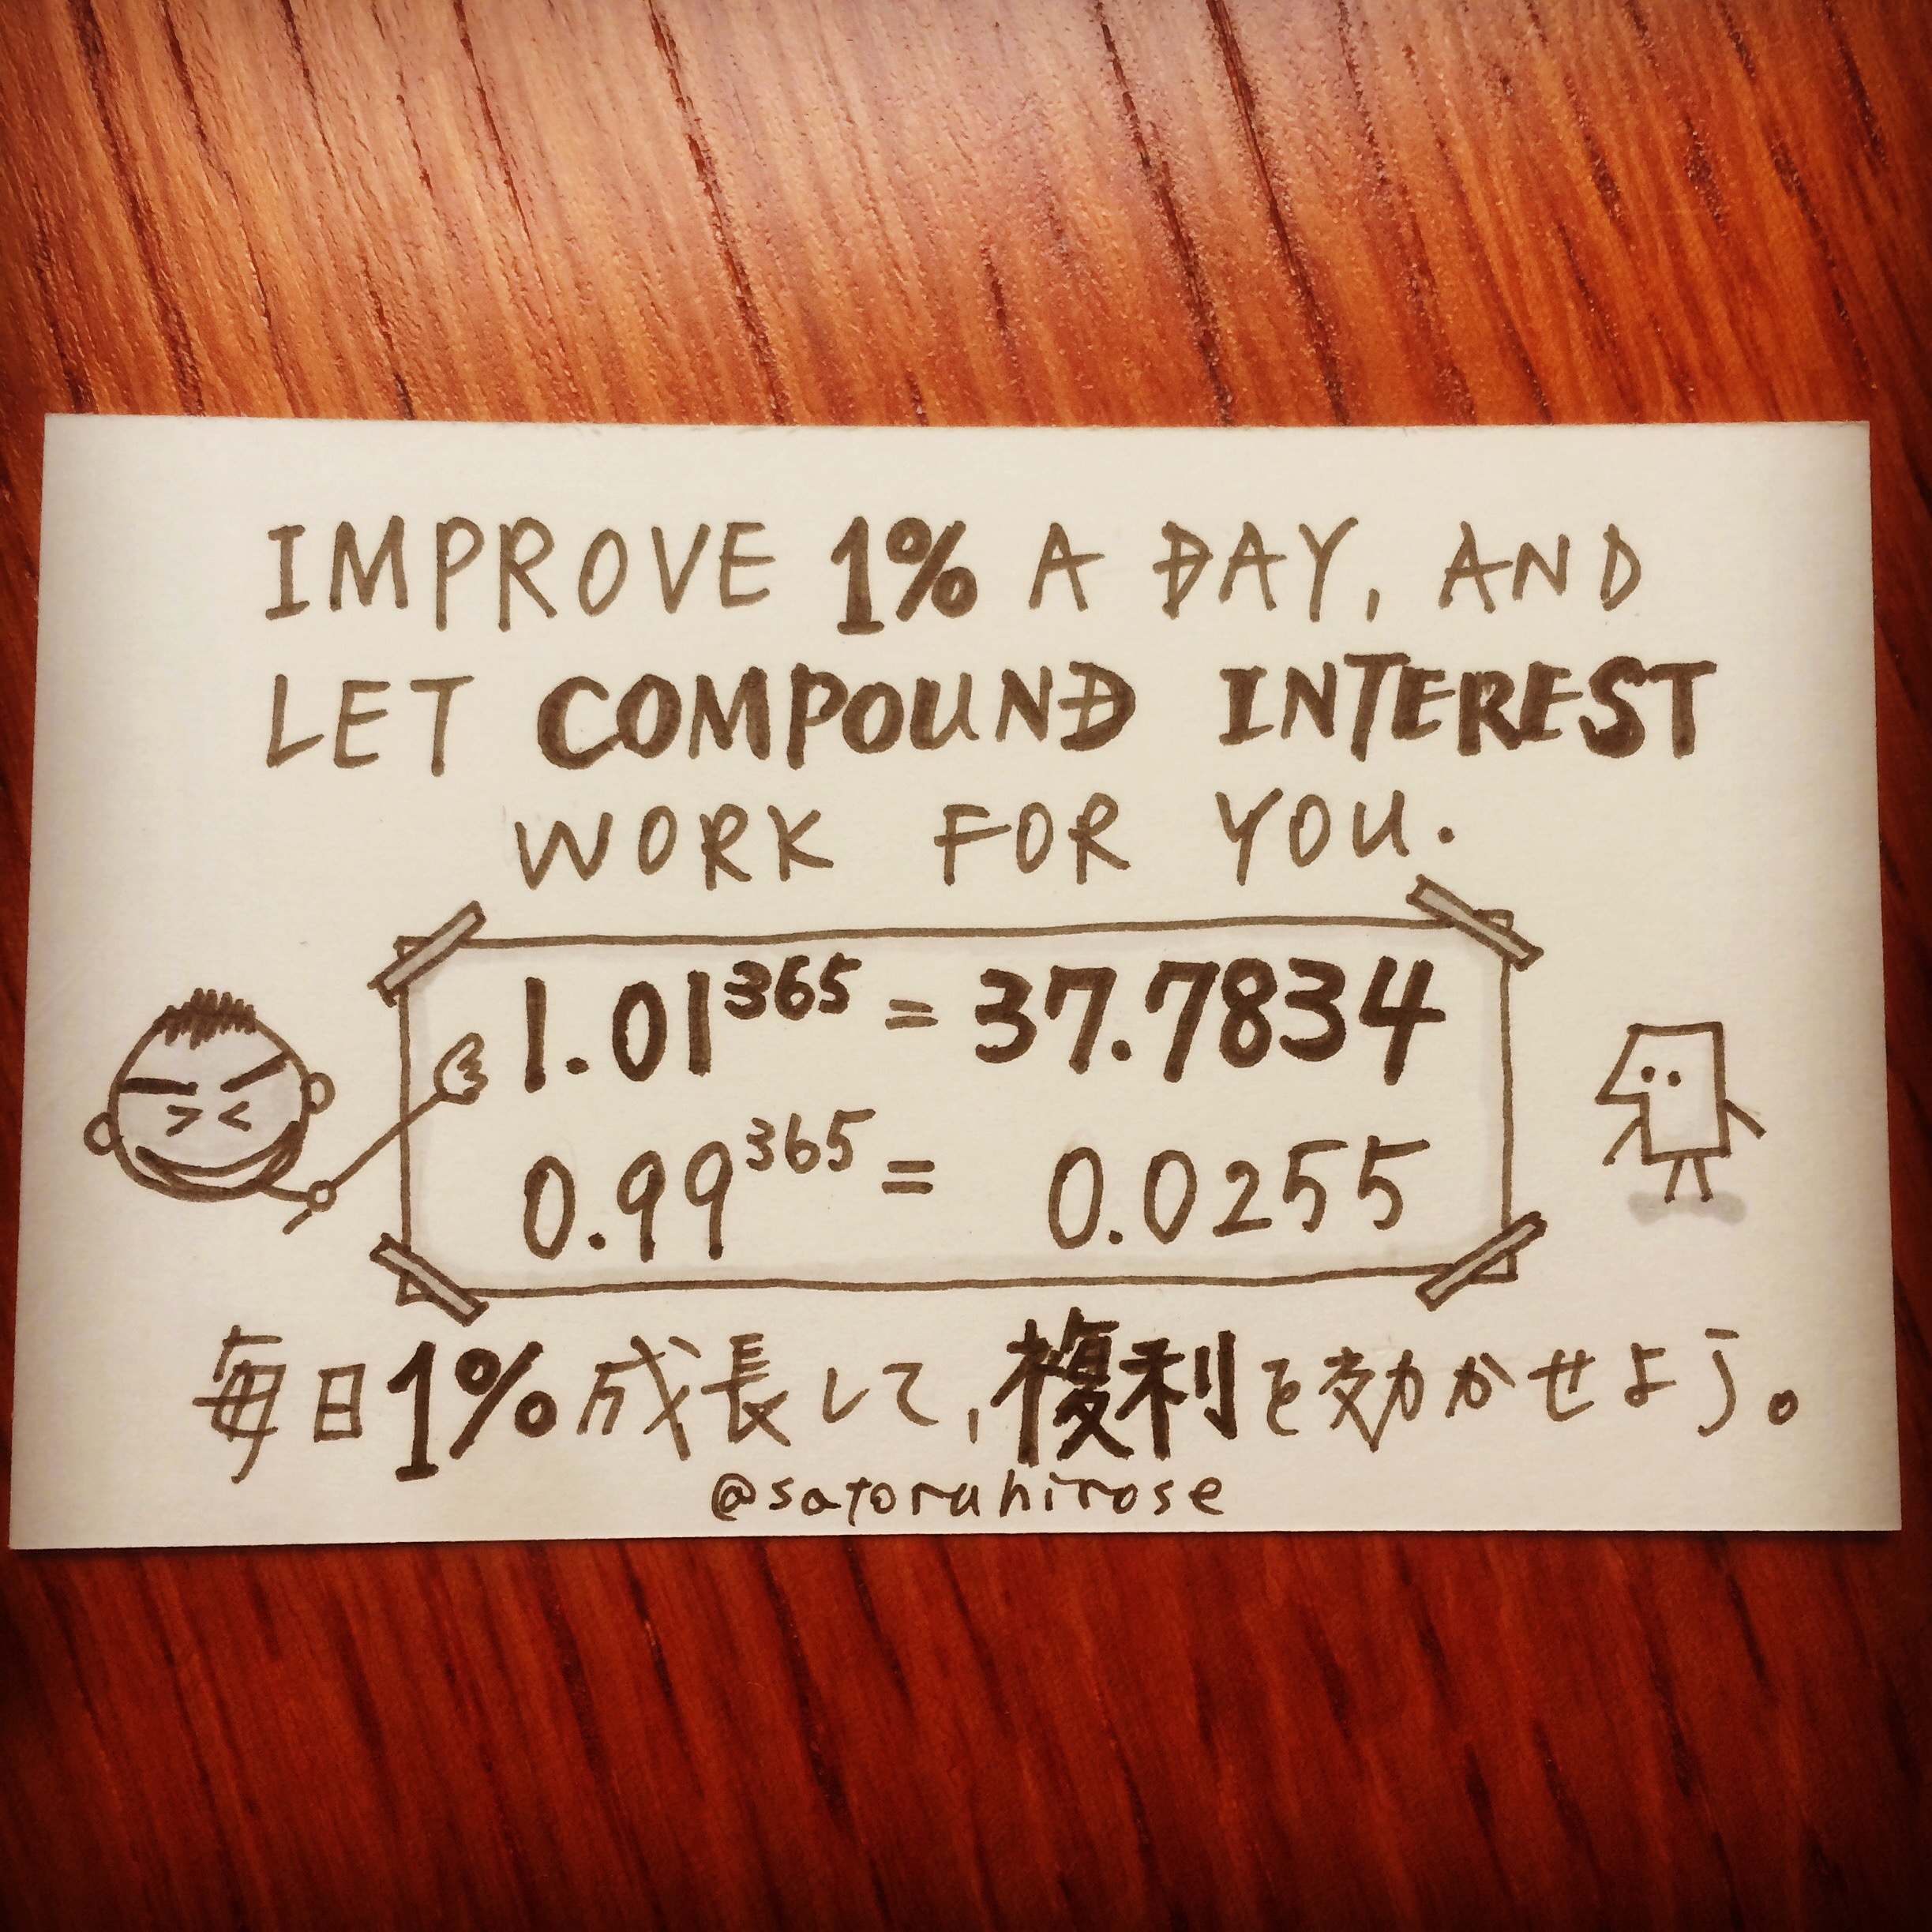 Improve 1% a day, and let compound interest work for you.